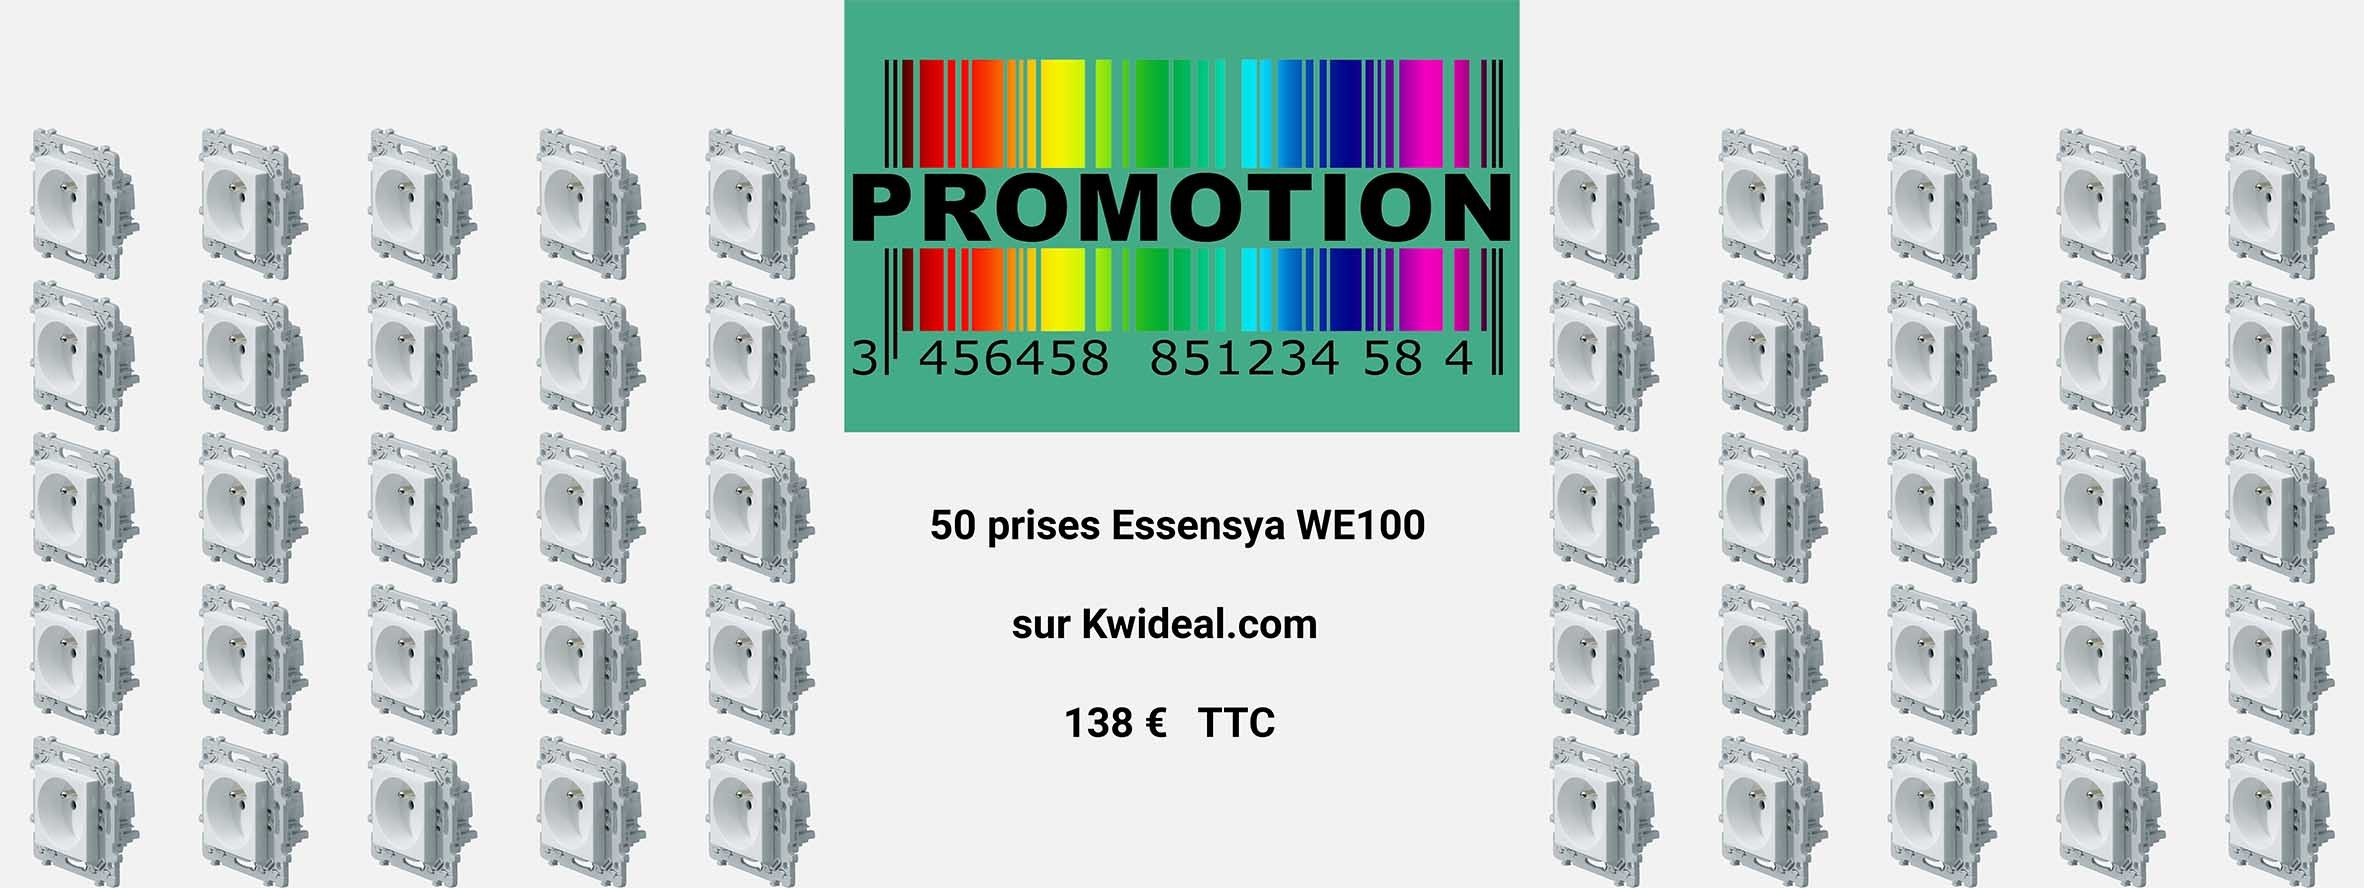 50 prises Essensya WE100 en promotion